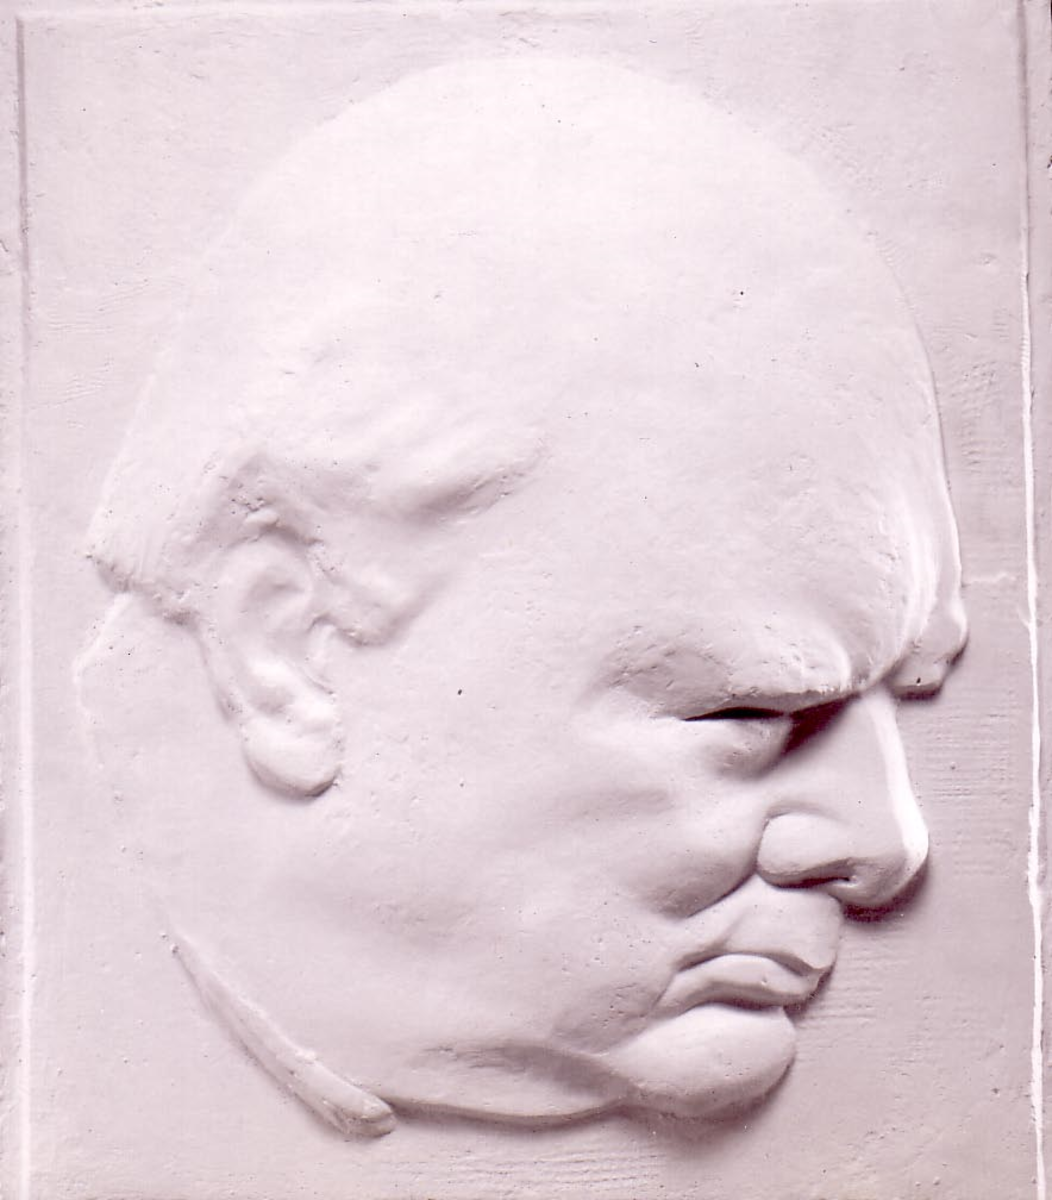 Oscar Nemon's daughter, Aurelia Young, has graciously provided this photo of Nemon's profile of Churchill in relief, which she believes her father may have used for the crown.